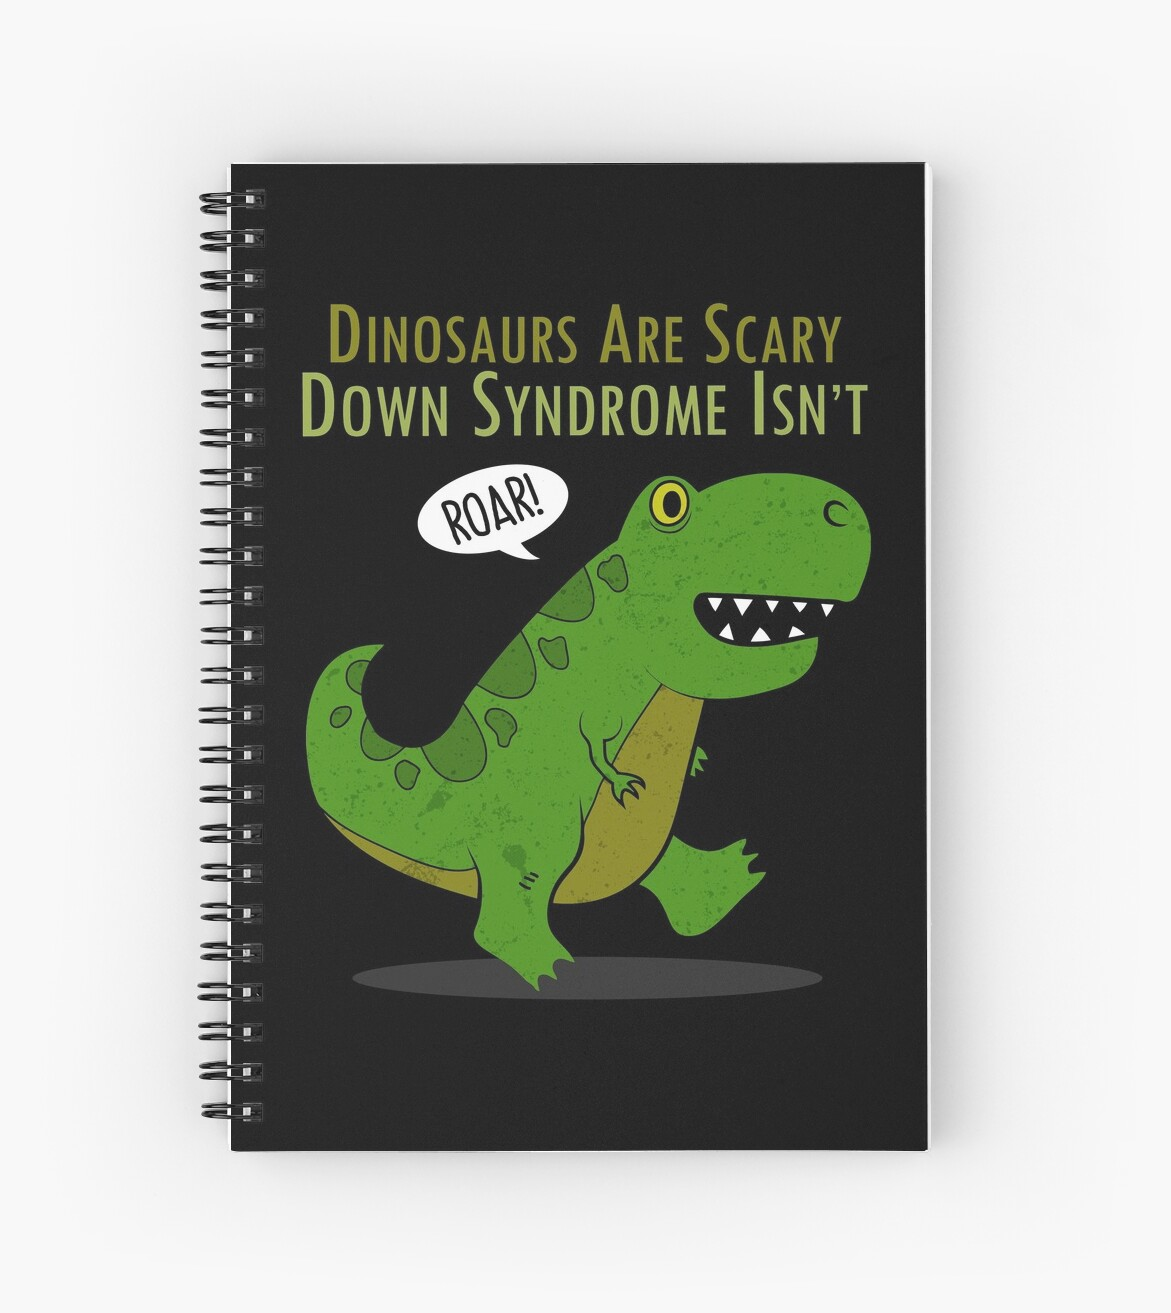 Dinosaurs Are Scary Down Syndrome Is Not Redbubble Dinosaurs Are Scary Down Syndrome Is Not